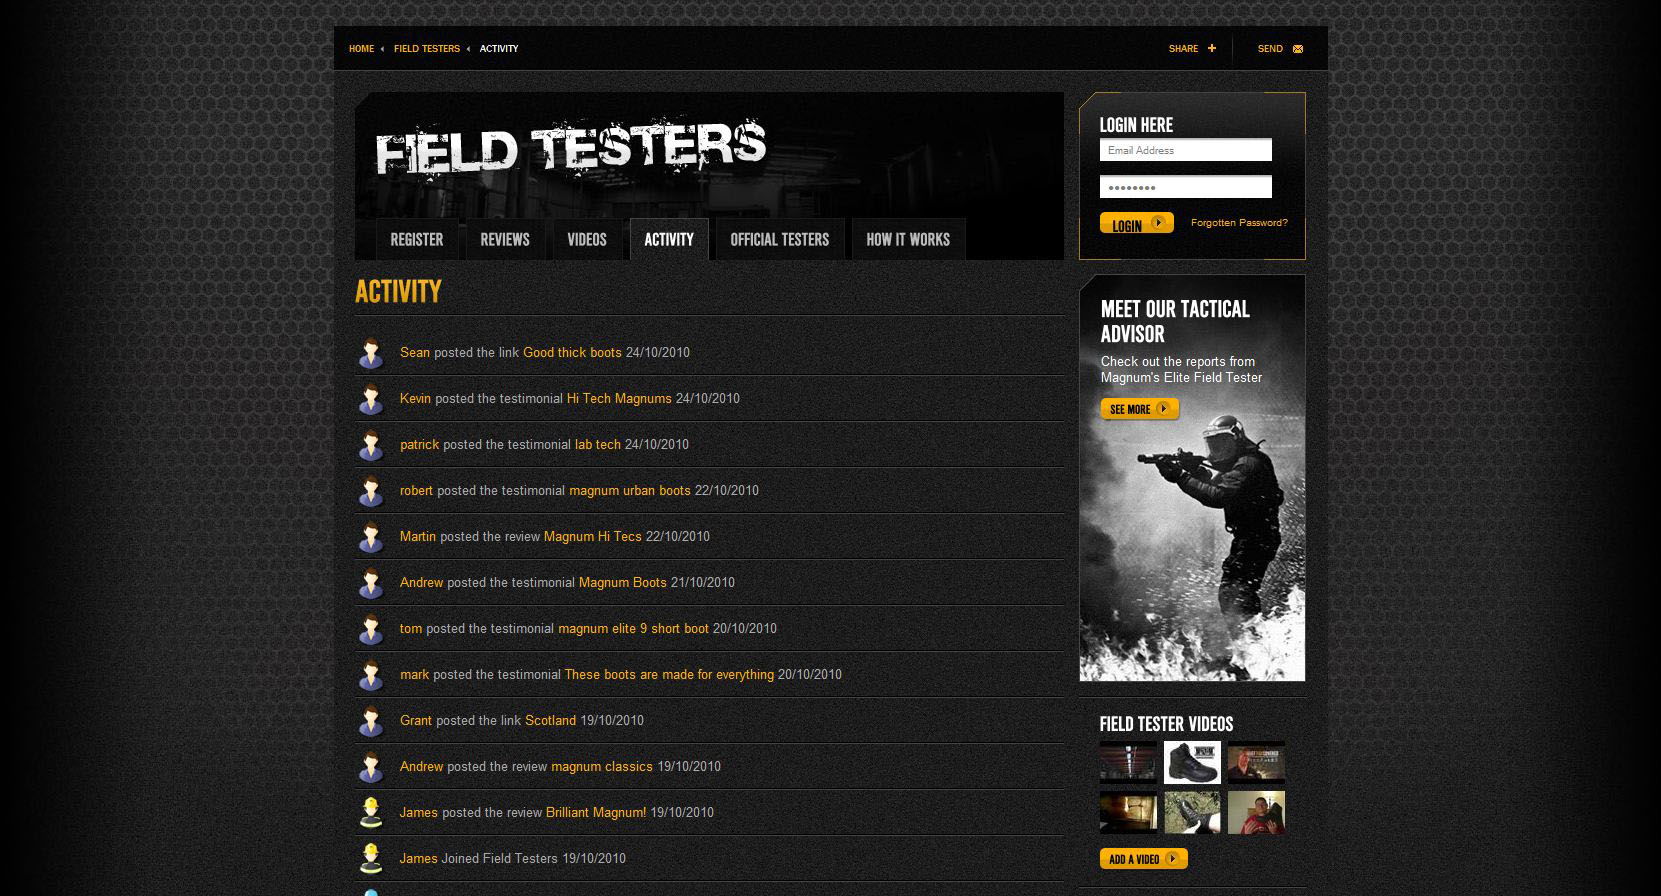 The return of Field Testers